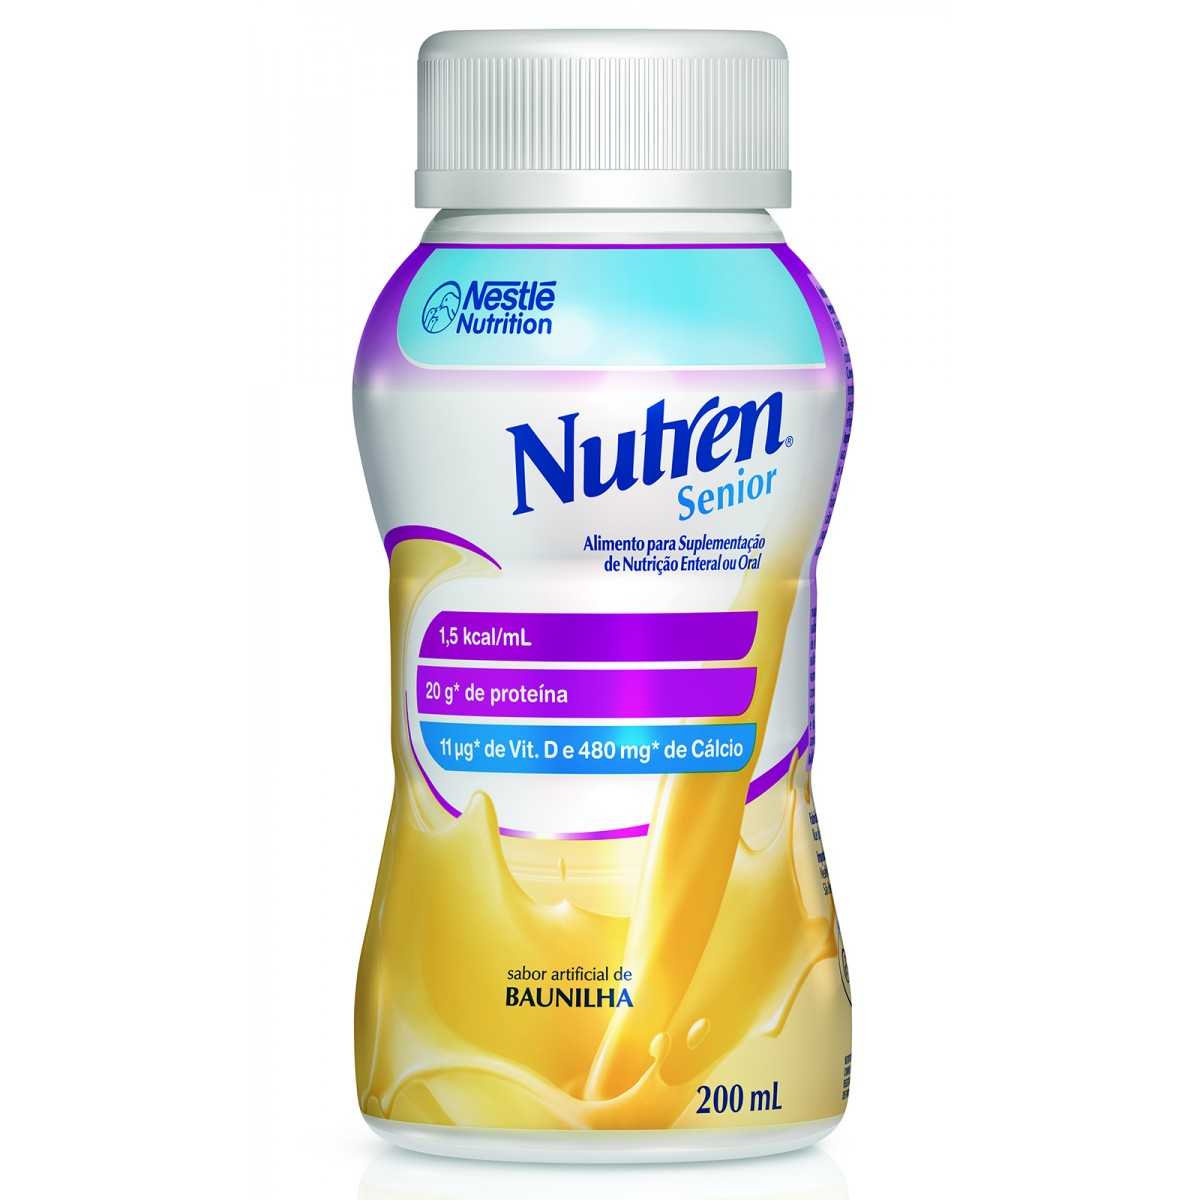 Nutren Senior 1.5 Baunilha - 200 mL - (NESTLE)